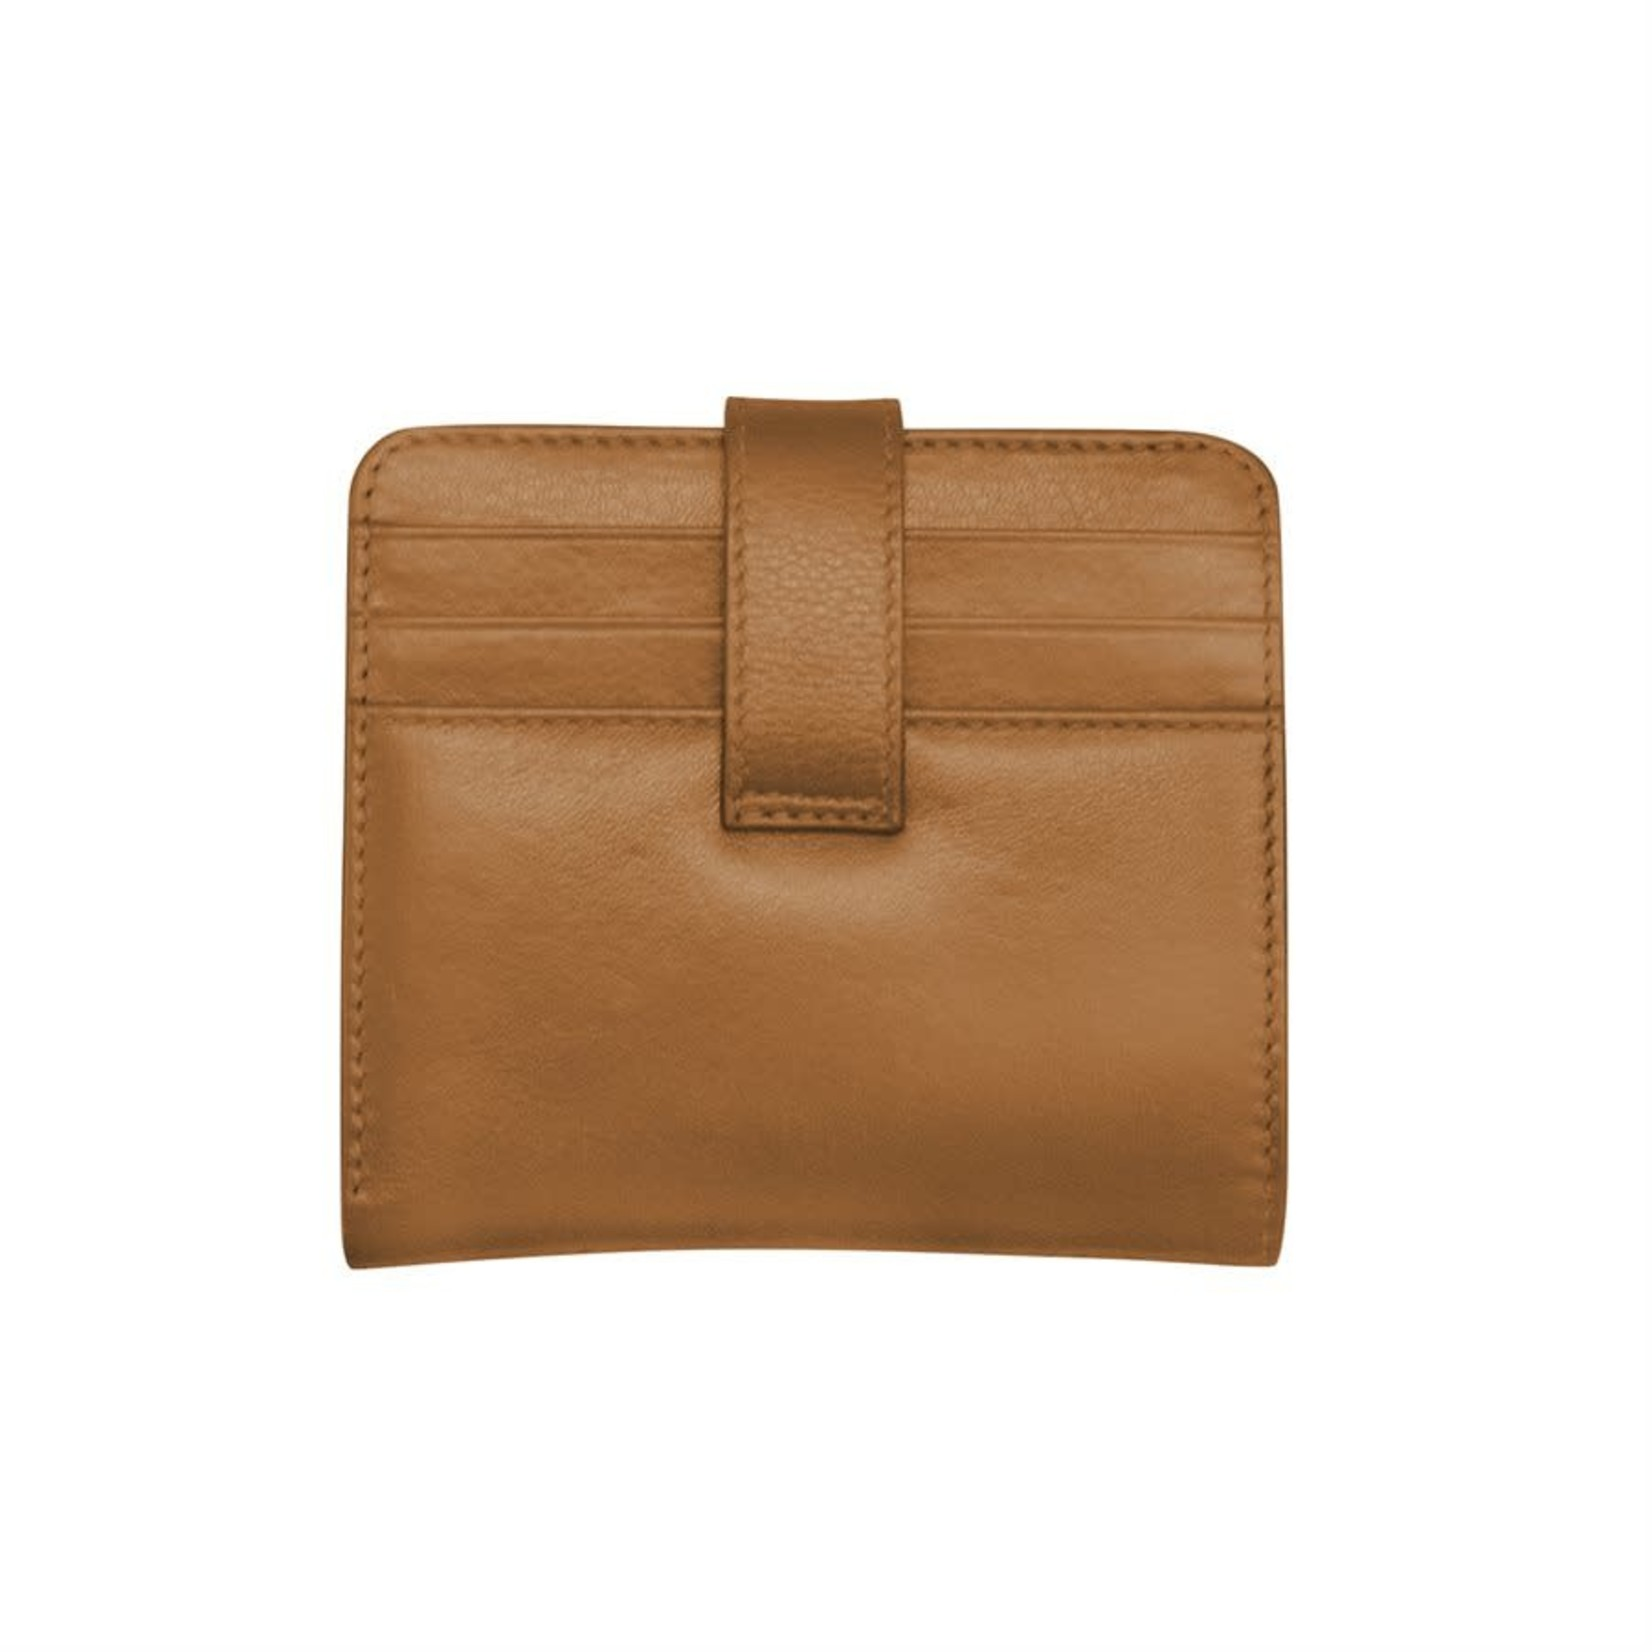 Leather Handbags and Accessories 7301 Antique Saddle - RFID Small Wallet